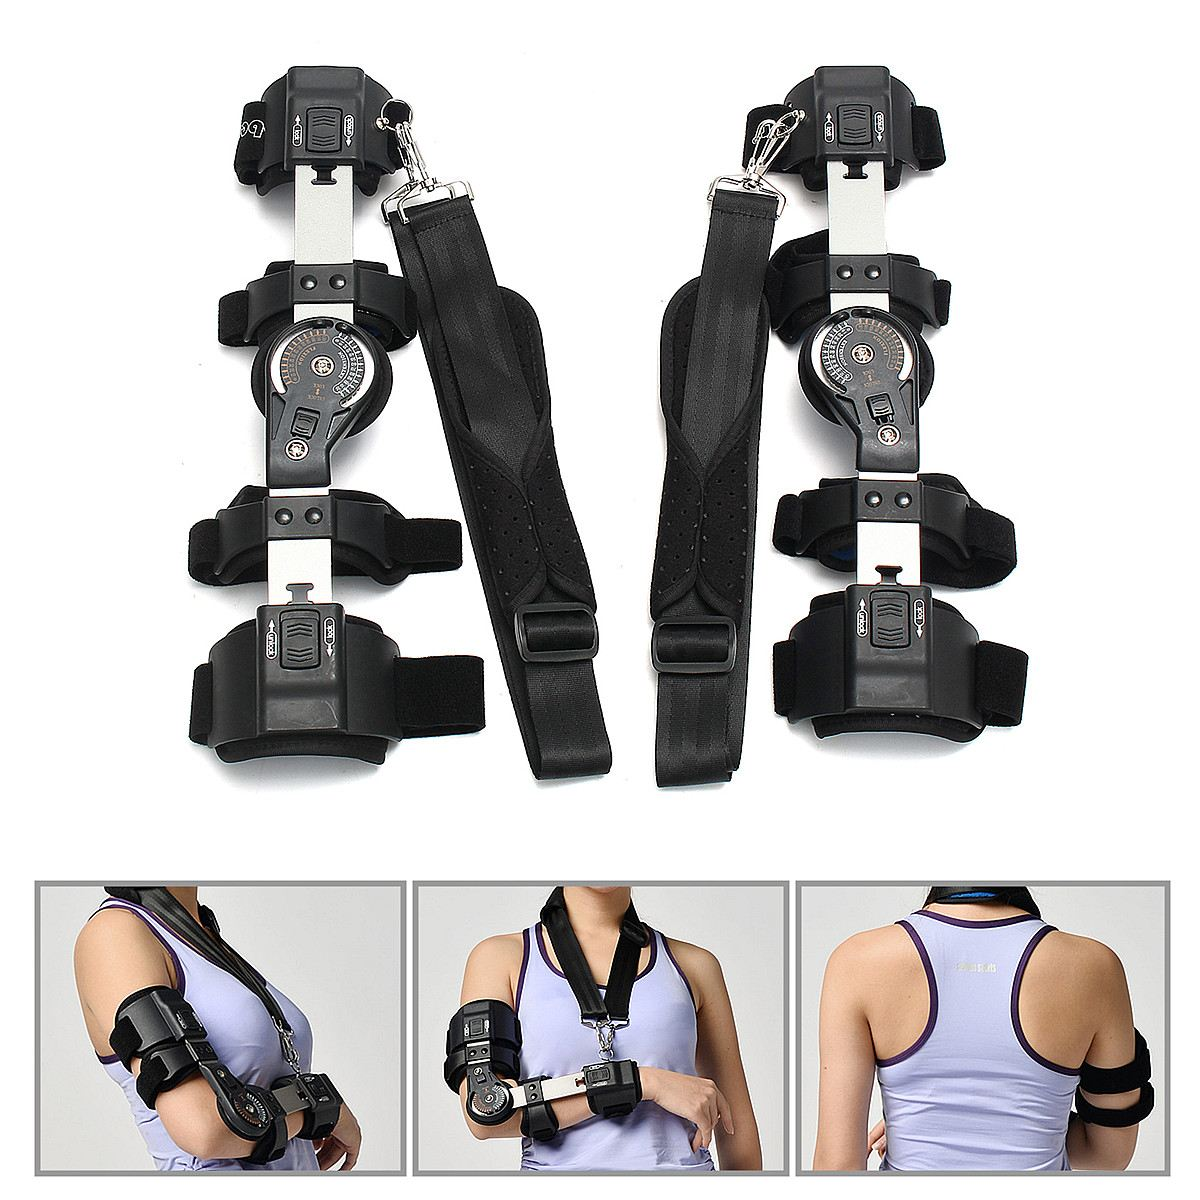 Professional Elbow Arm Sling Brace Shoulder Immobiliser Fracture Sprain Support adjustable knee joint support hinged splint wrap sprain orthosis post op brace sports knee pads fracture fixed rehabilitation